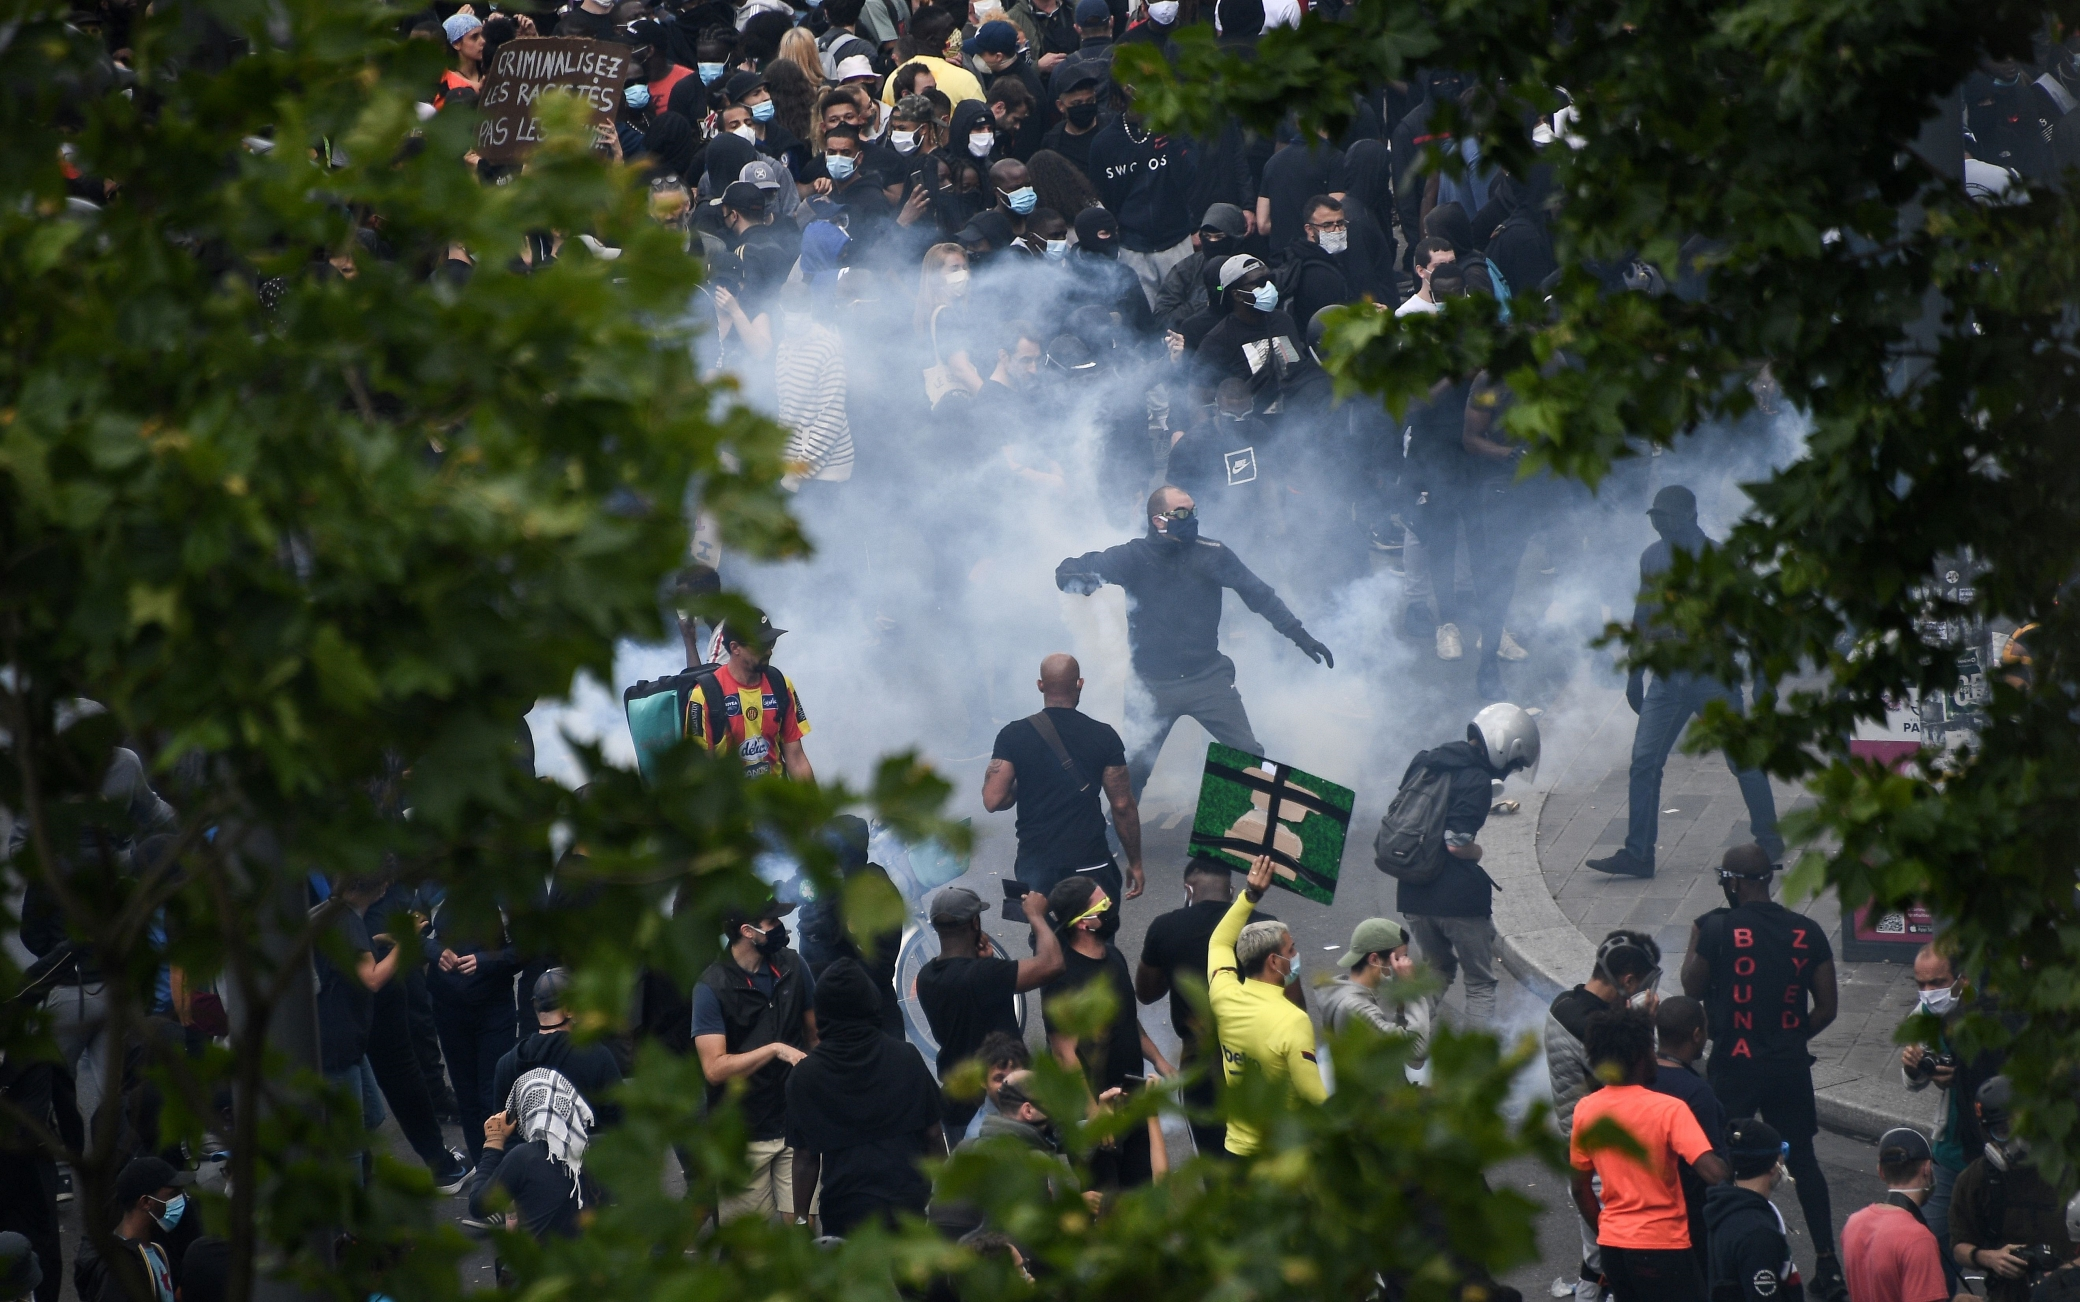 People throw back tear gas canisters at French riot police forces during a rally as part of the 'Black Lives Matter' worldwide protests against racism and police brutality, on Place de la Republique in Paris on June 13, 2020. - A wave of global protests in the wake of US George Floyd's fatal arrest magnified attention on the 2016 death in French police custody of Adama Traore, a 24-year-old black man, and renewed controversy over claims of racism and brutality within the force. (Photo by Anne-Christine POUJOULAT / AFP) (Photo by ANNE-CHRISTINE POUJOULAT/AFP via Getty Images)